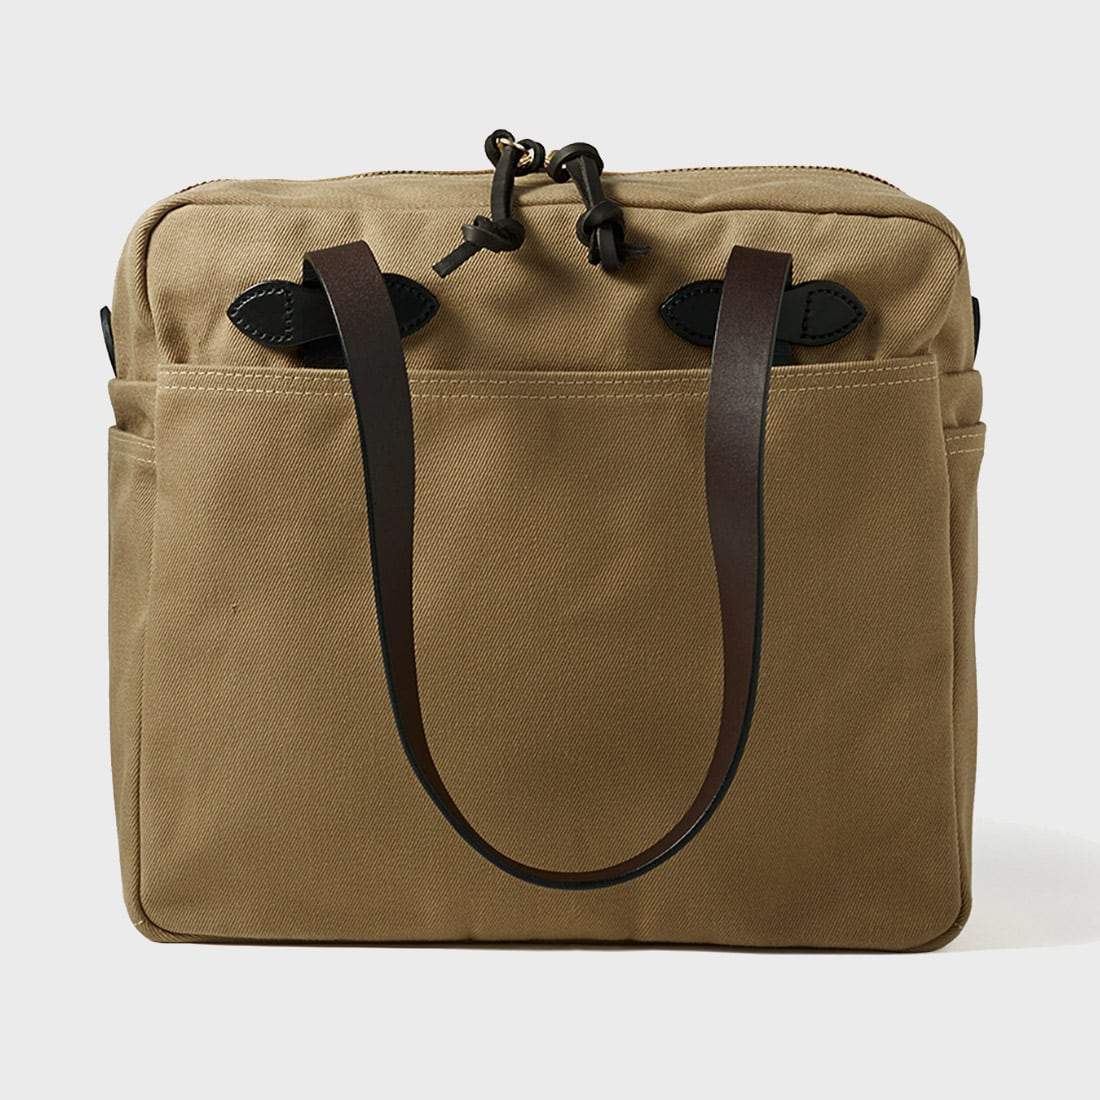 590118d5885 Filson Tote Bag with Zipper Tan